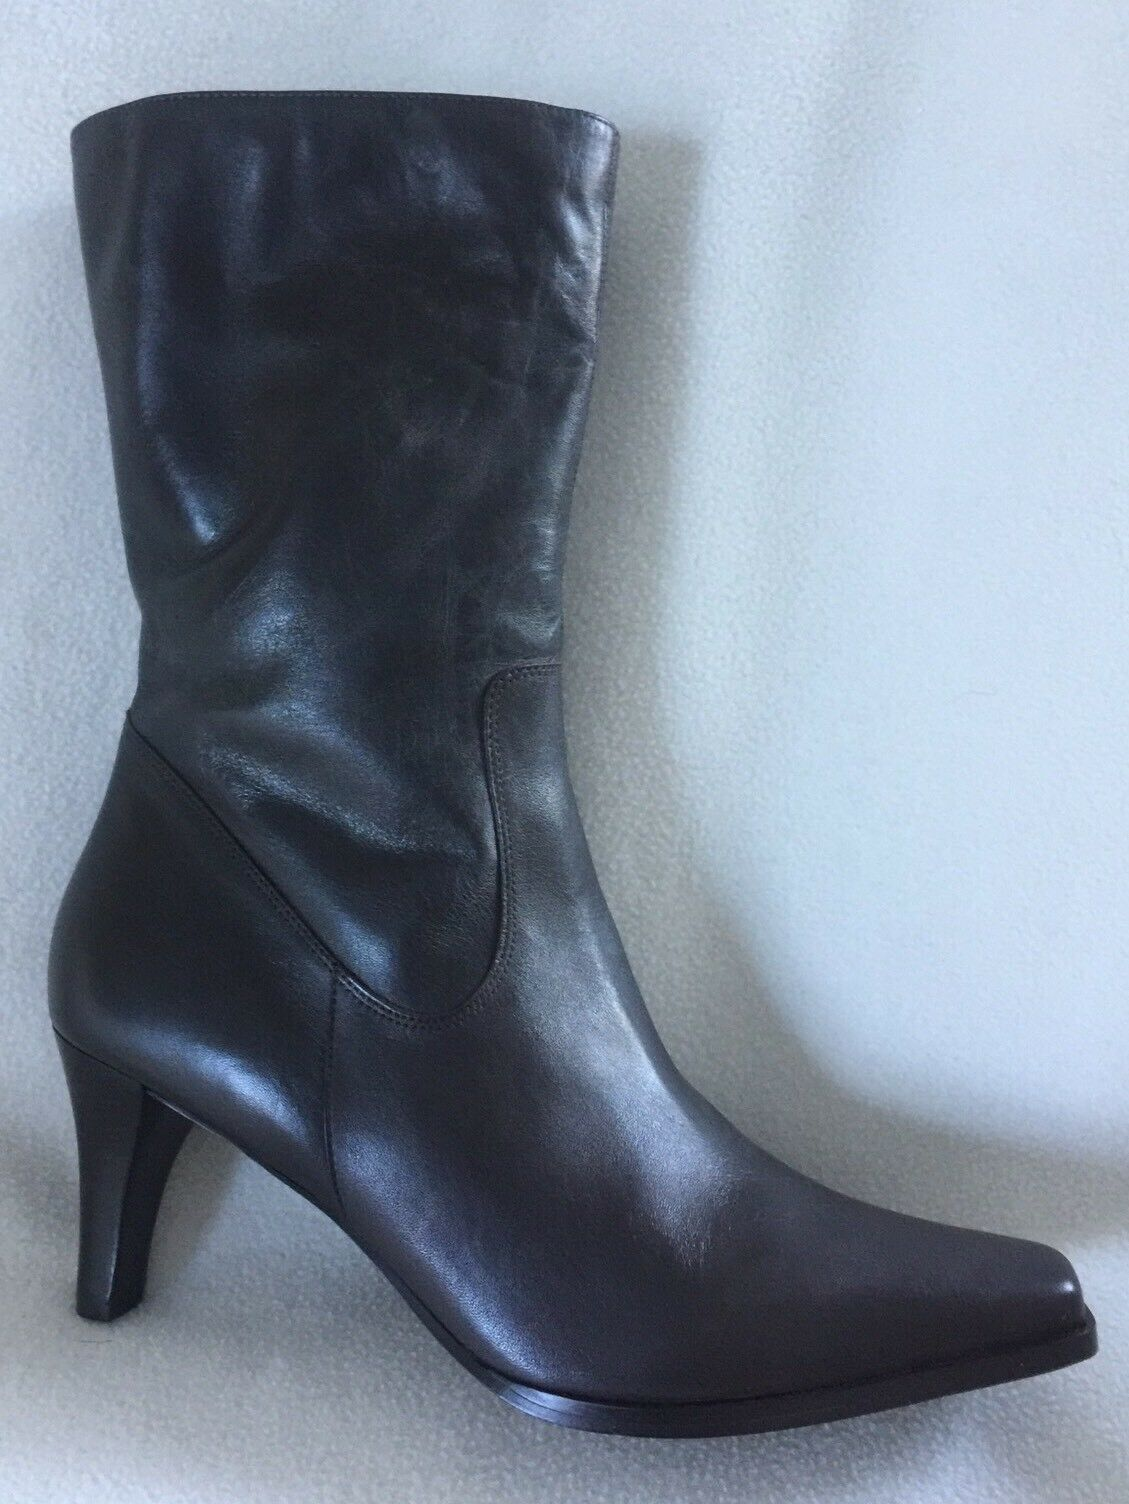 New Eddie Bauer Dark Brown Leather Mid Calf Boots sz 11 M